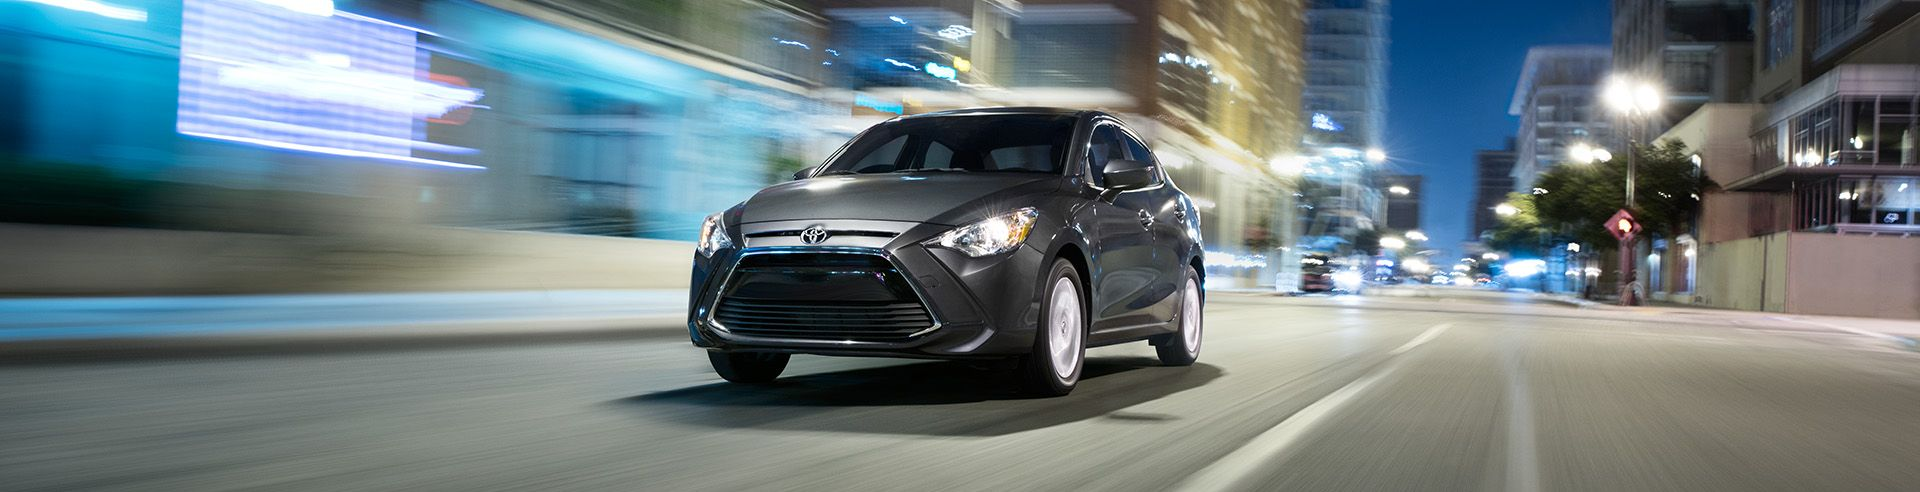 2018 Toyota Yaris iA for Sale near Raytown, MO